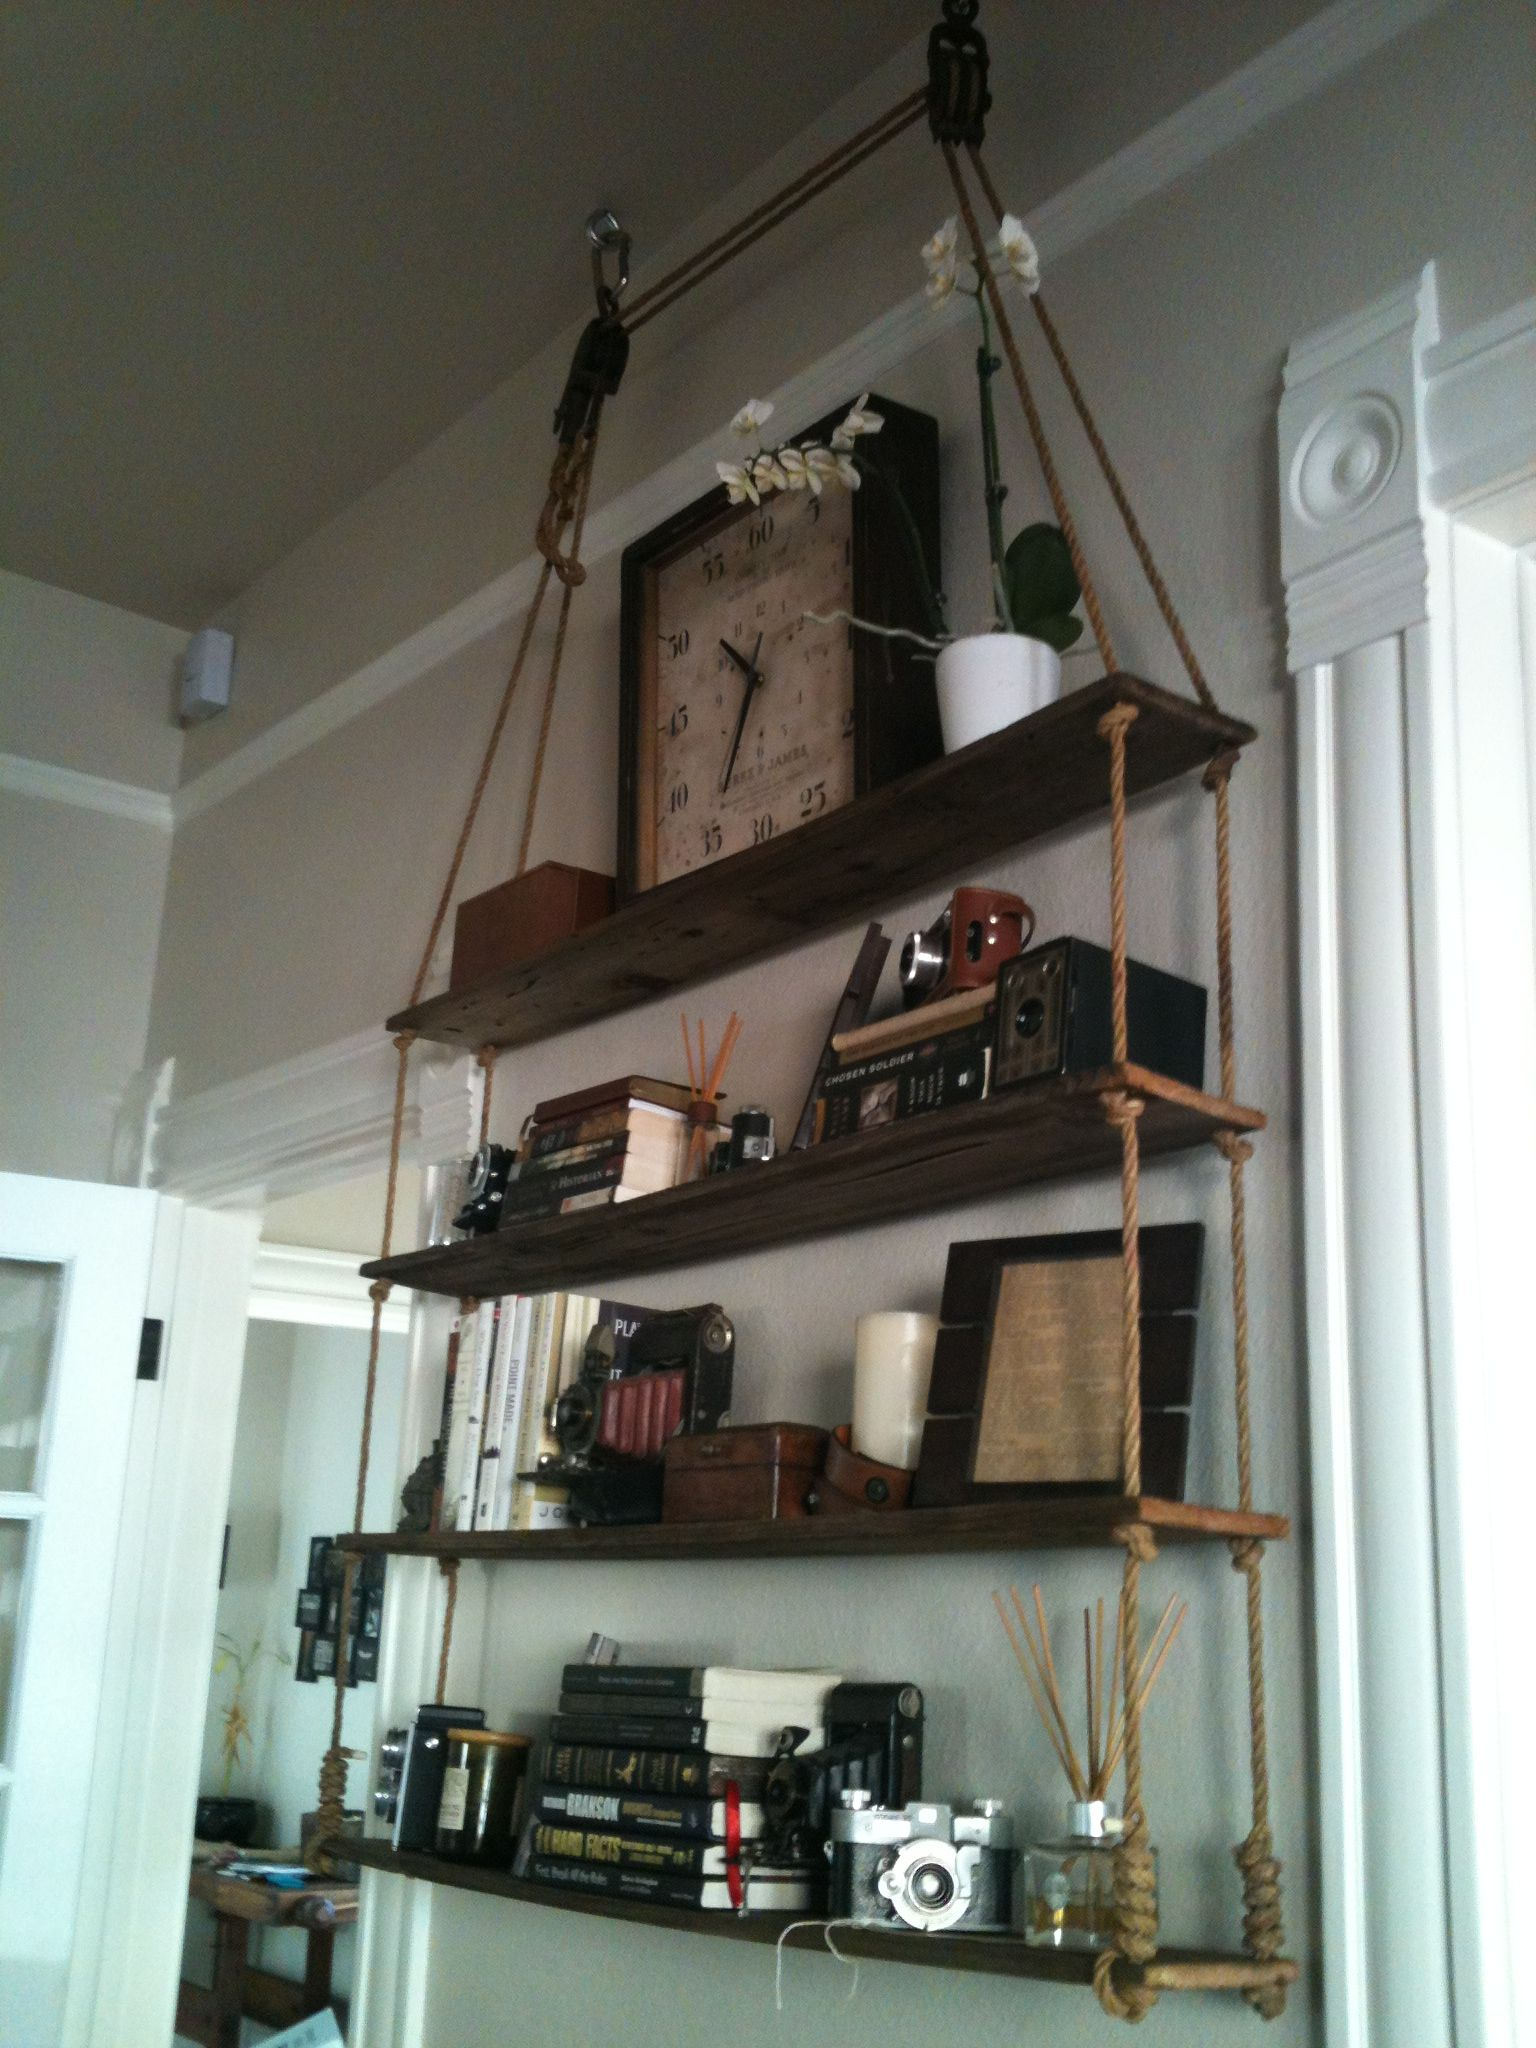 Hanging rope shelves with pulleys and old fence boards as shelves